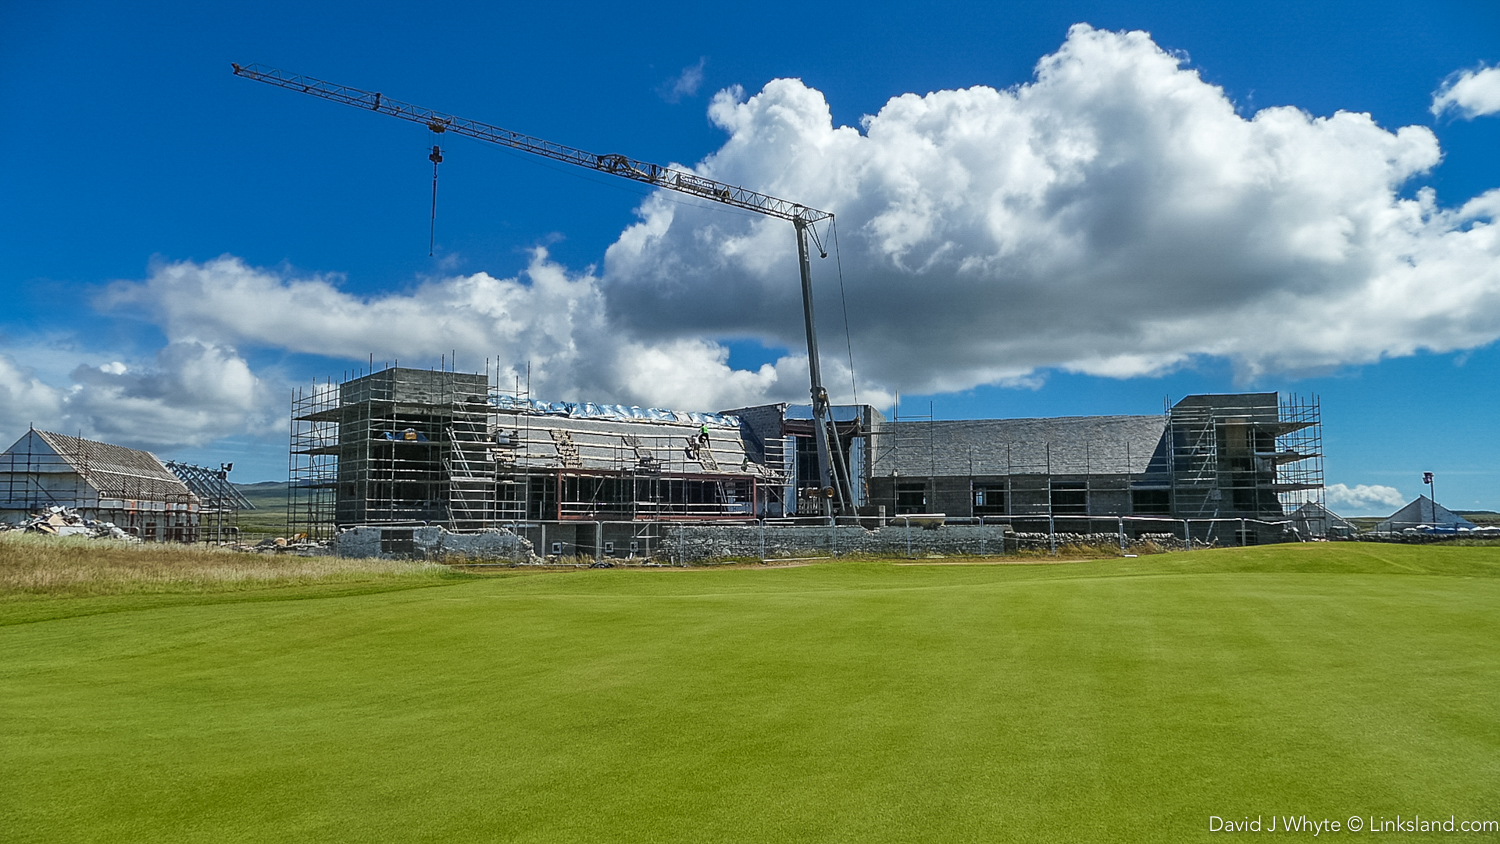 The new Machrie Hotel rises - opening in Spring, 2018 with 47 rooms and a wonderful whisky bar overlooking the 18th